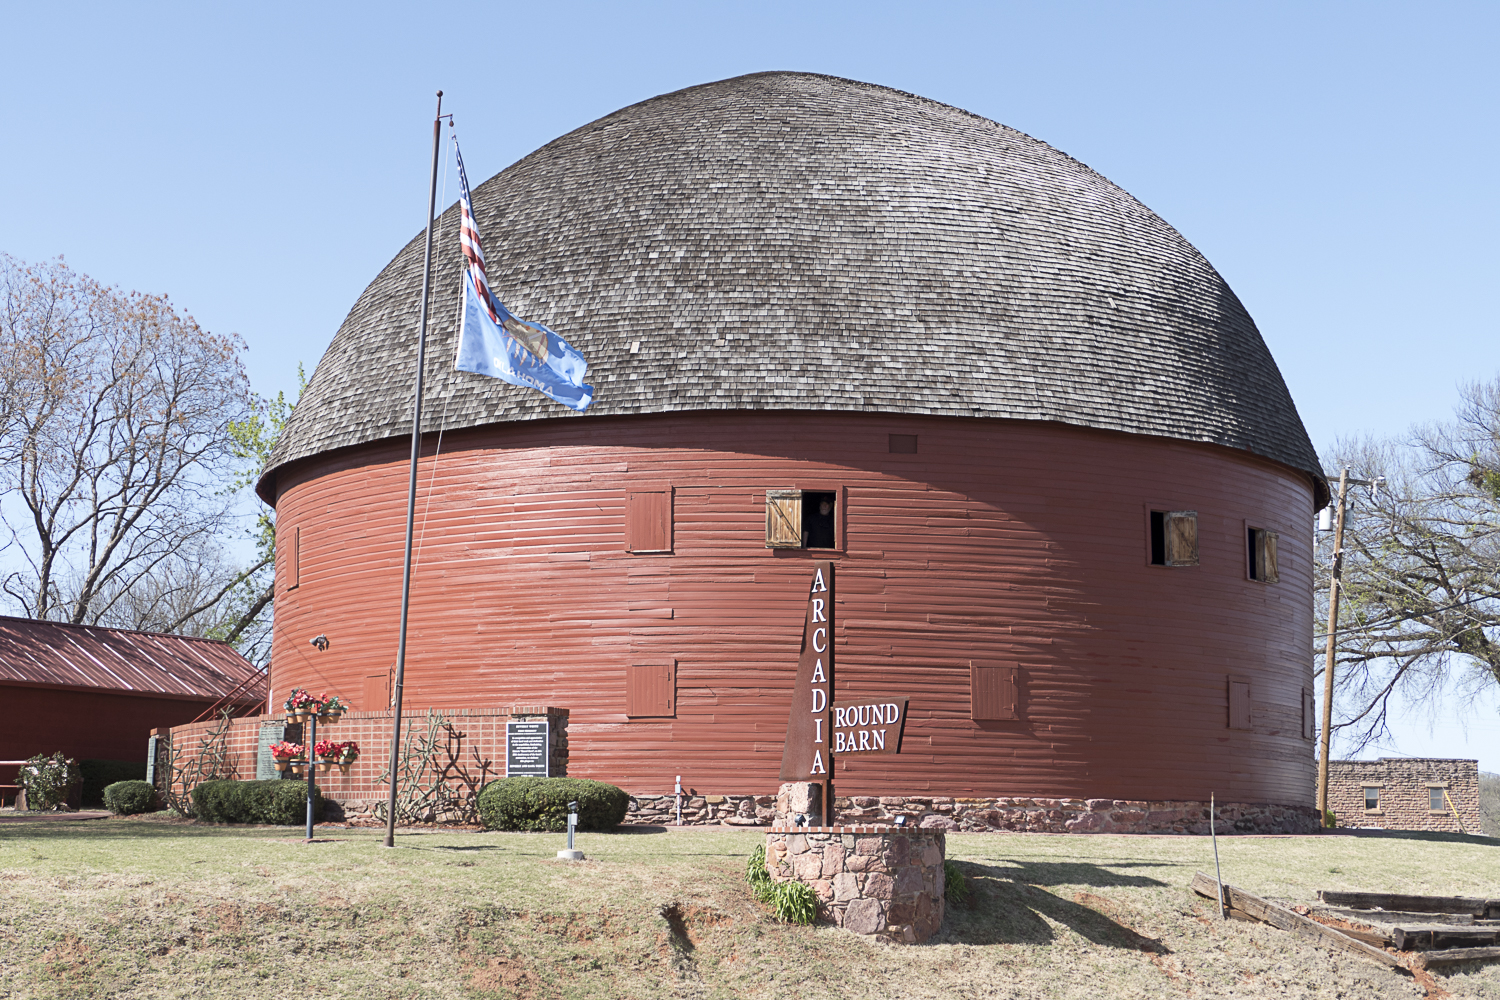 The Round Barn in Arcadia, OK on route 66